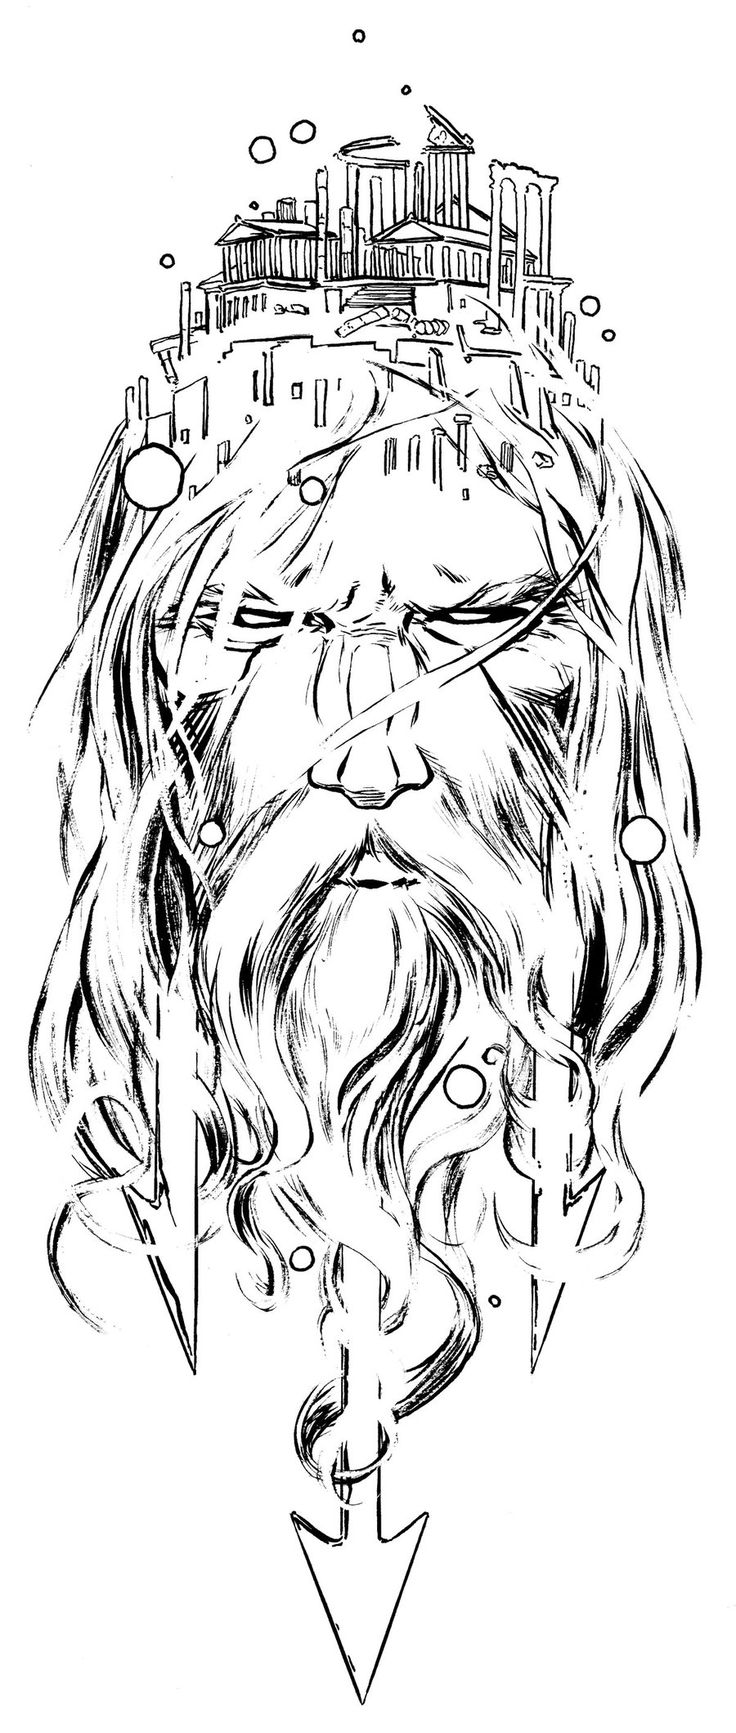 poseidon head by jamesjfrazier.deviantart.com on @deviantART